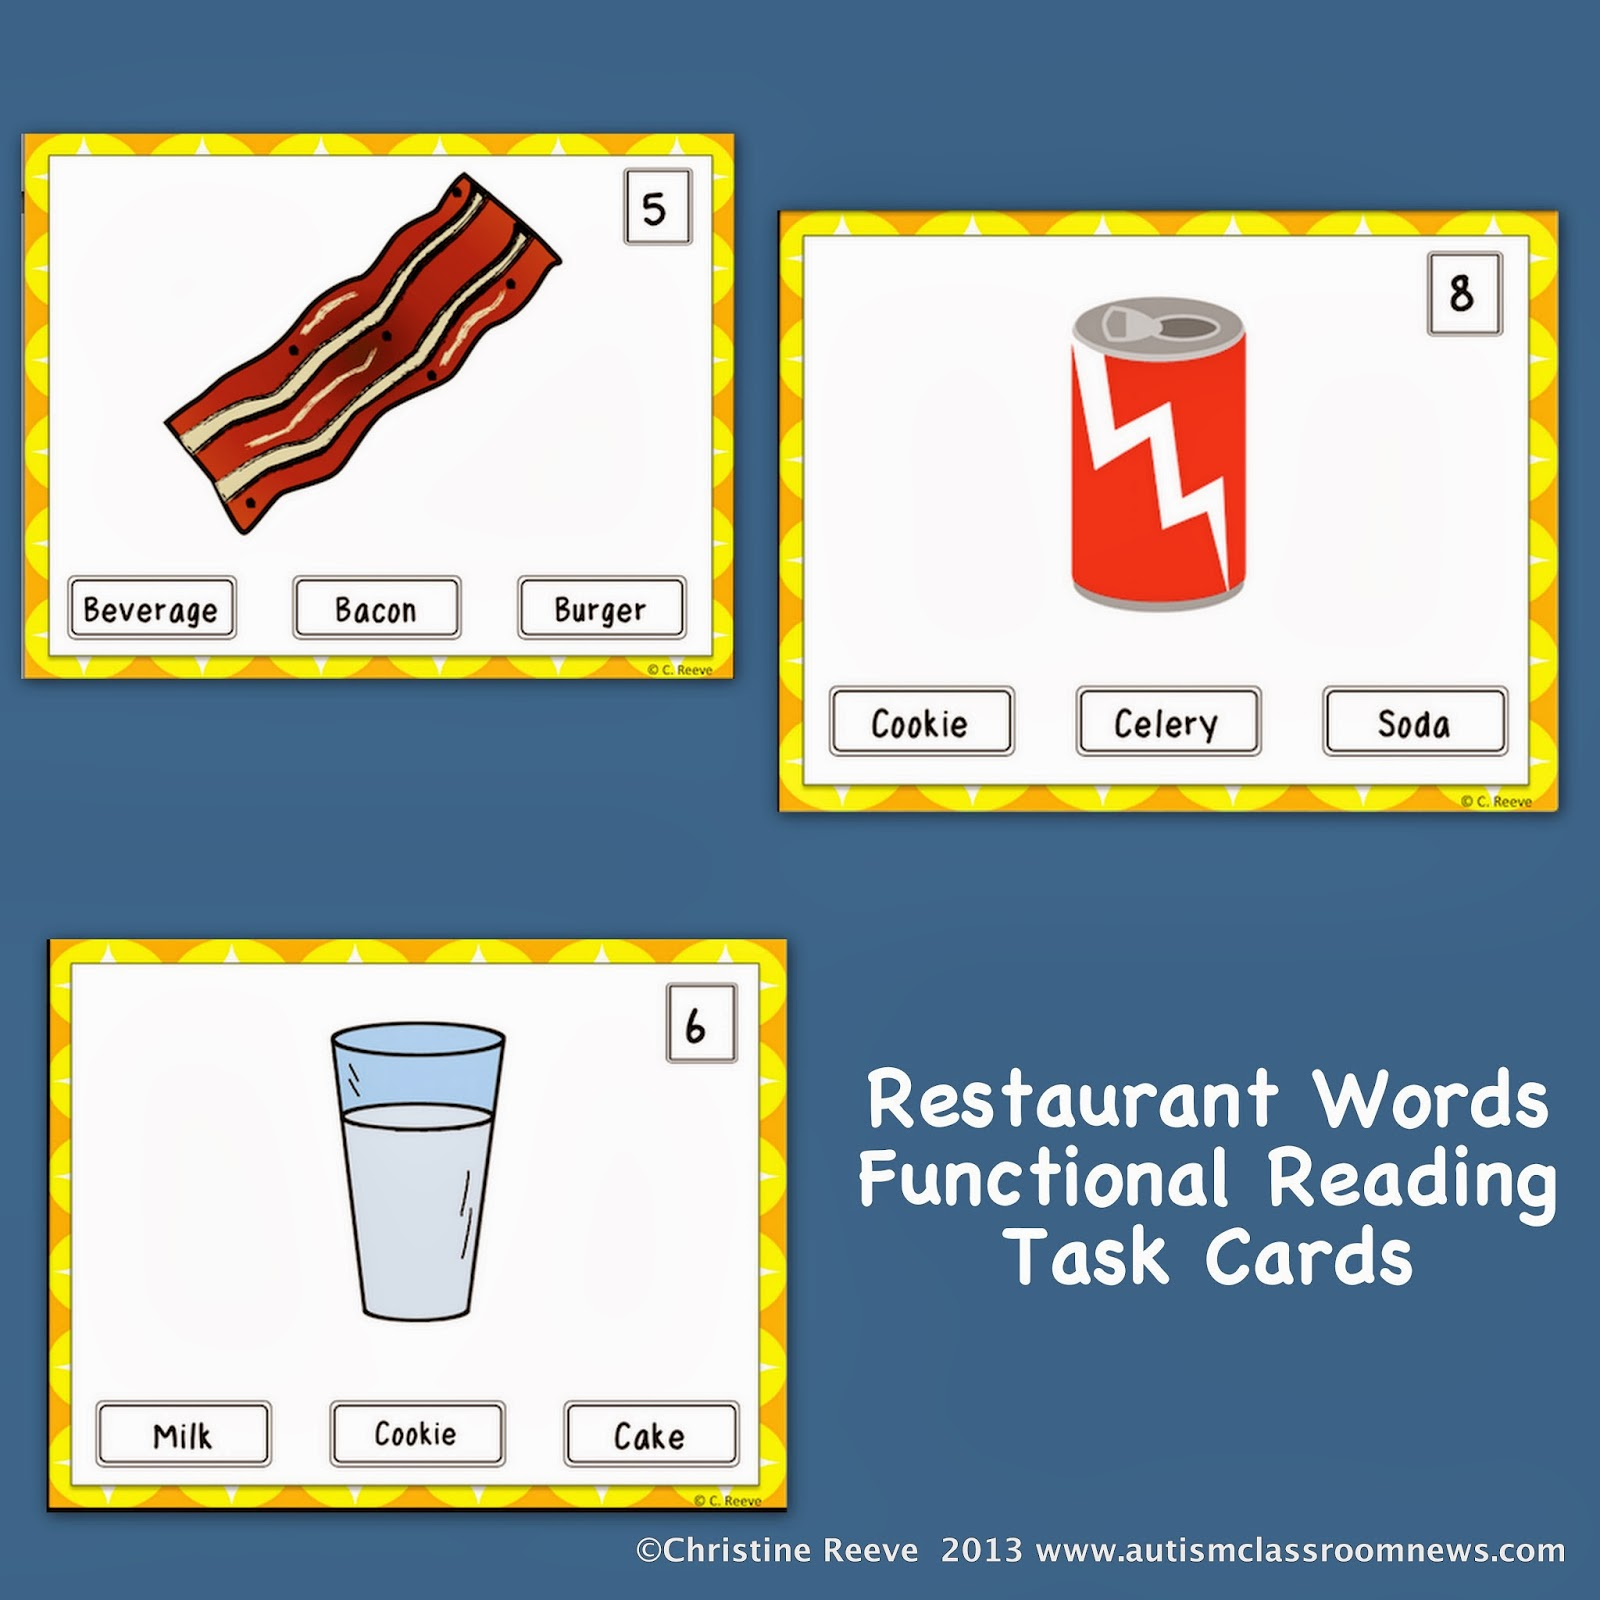 Functional Reading Tasks and IEP Goals - Autism Classroom Resources